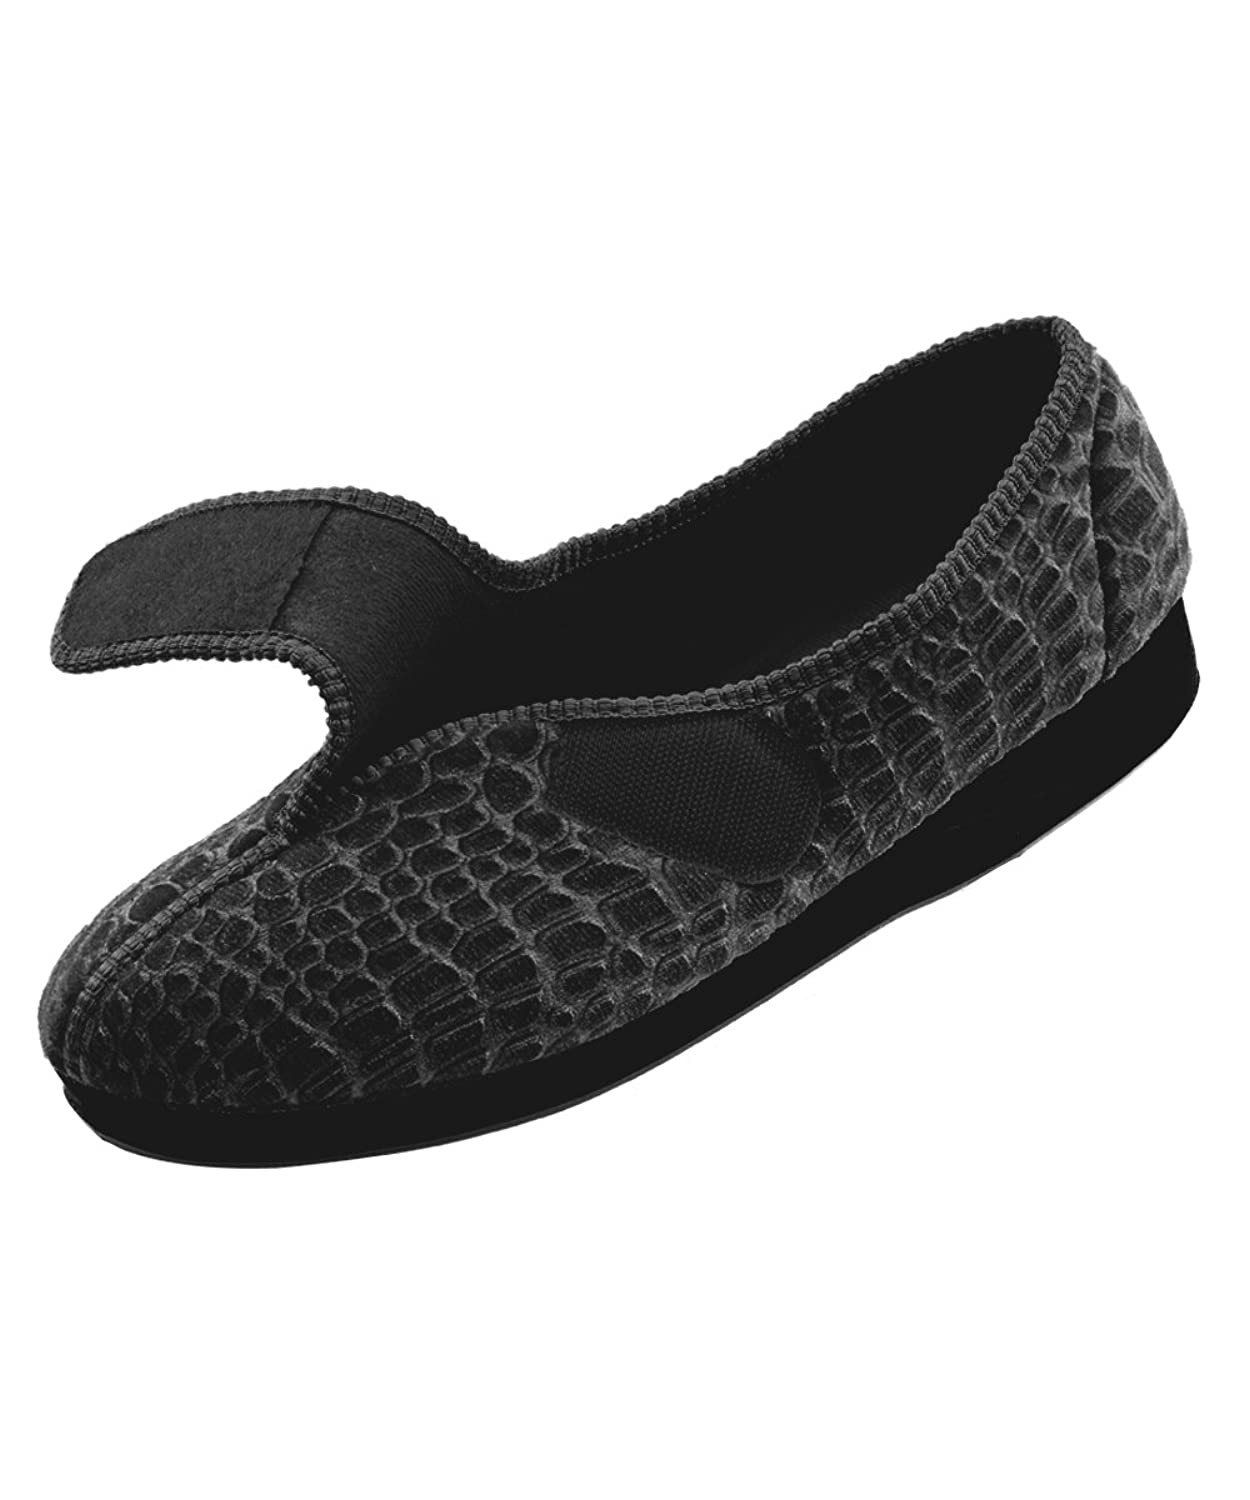 c148d48f888 Silverts Disabled Elderly Needs Womens Comfort Slippers - Wide - Womens  House Slippers with